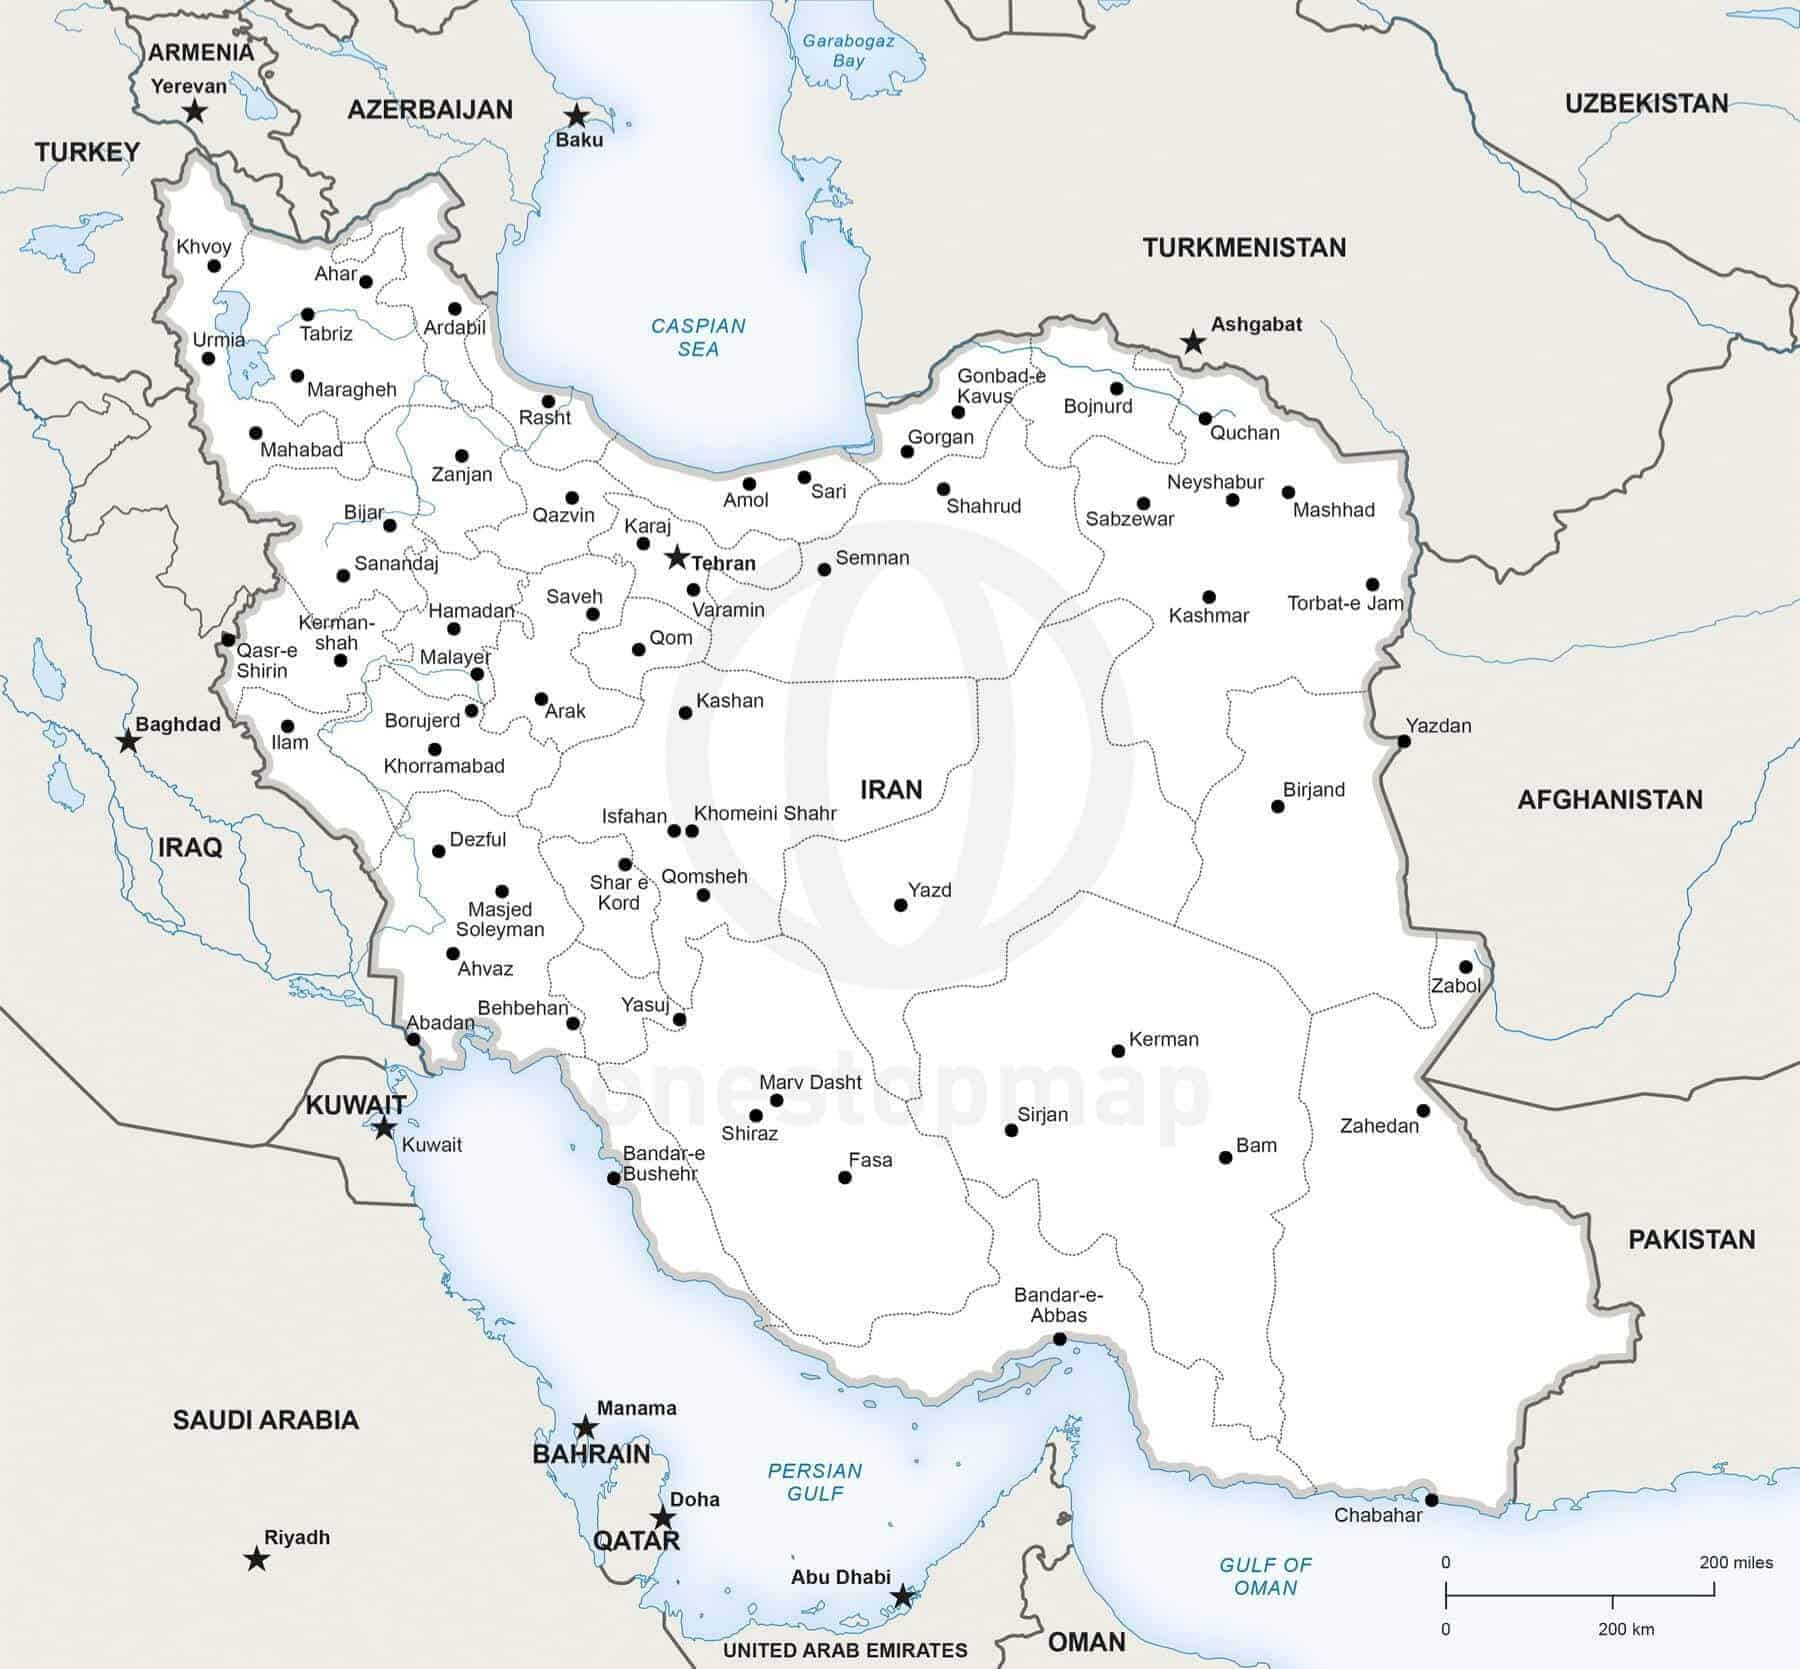 Map of Iran political